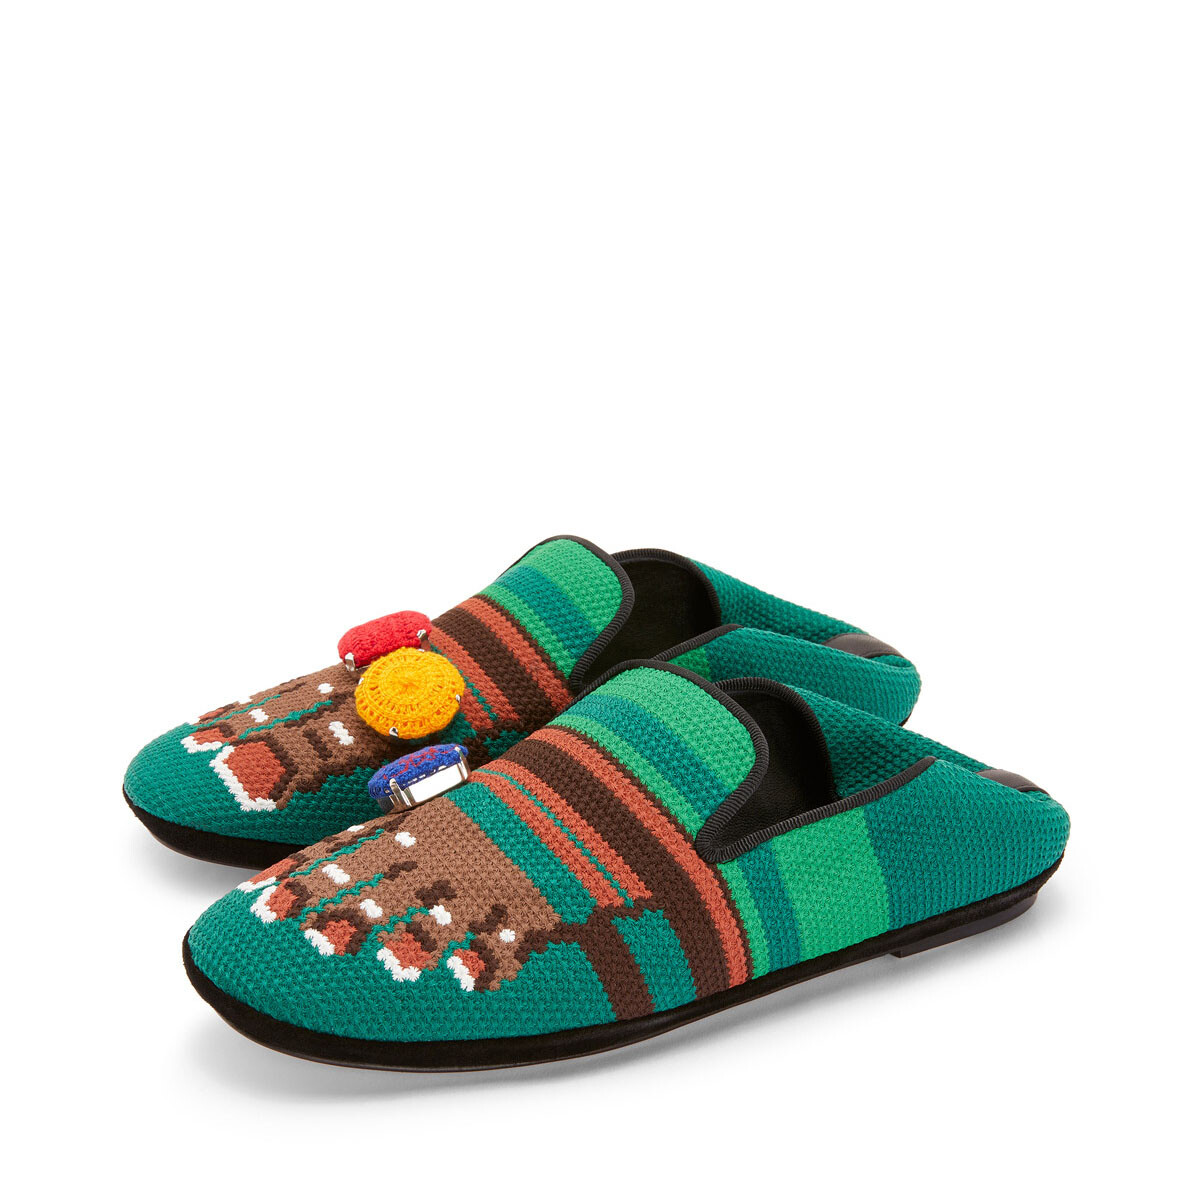 LOEWE Embroidered Slipper Toes Brown/Green front